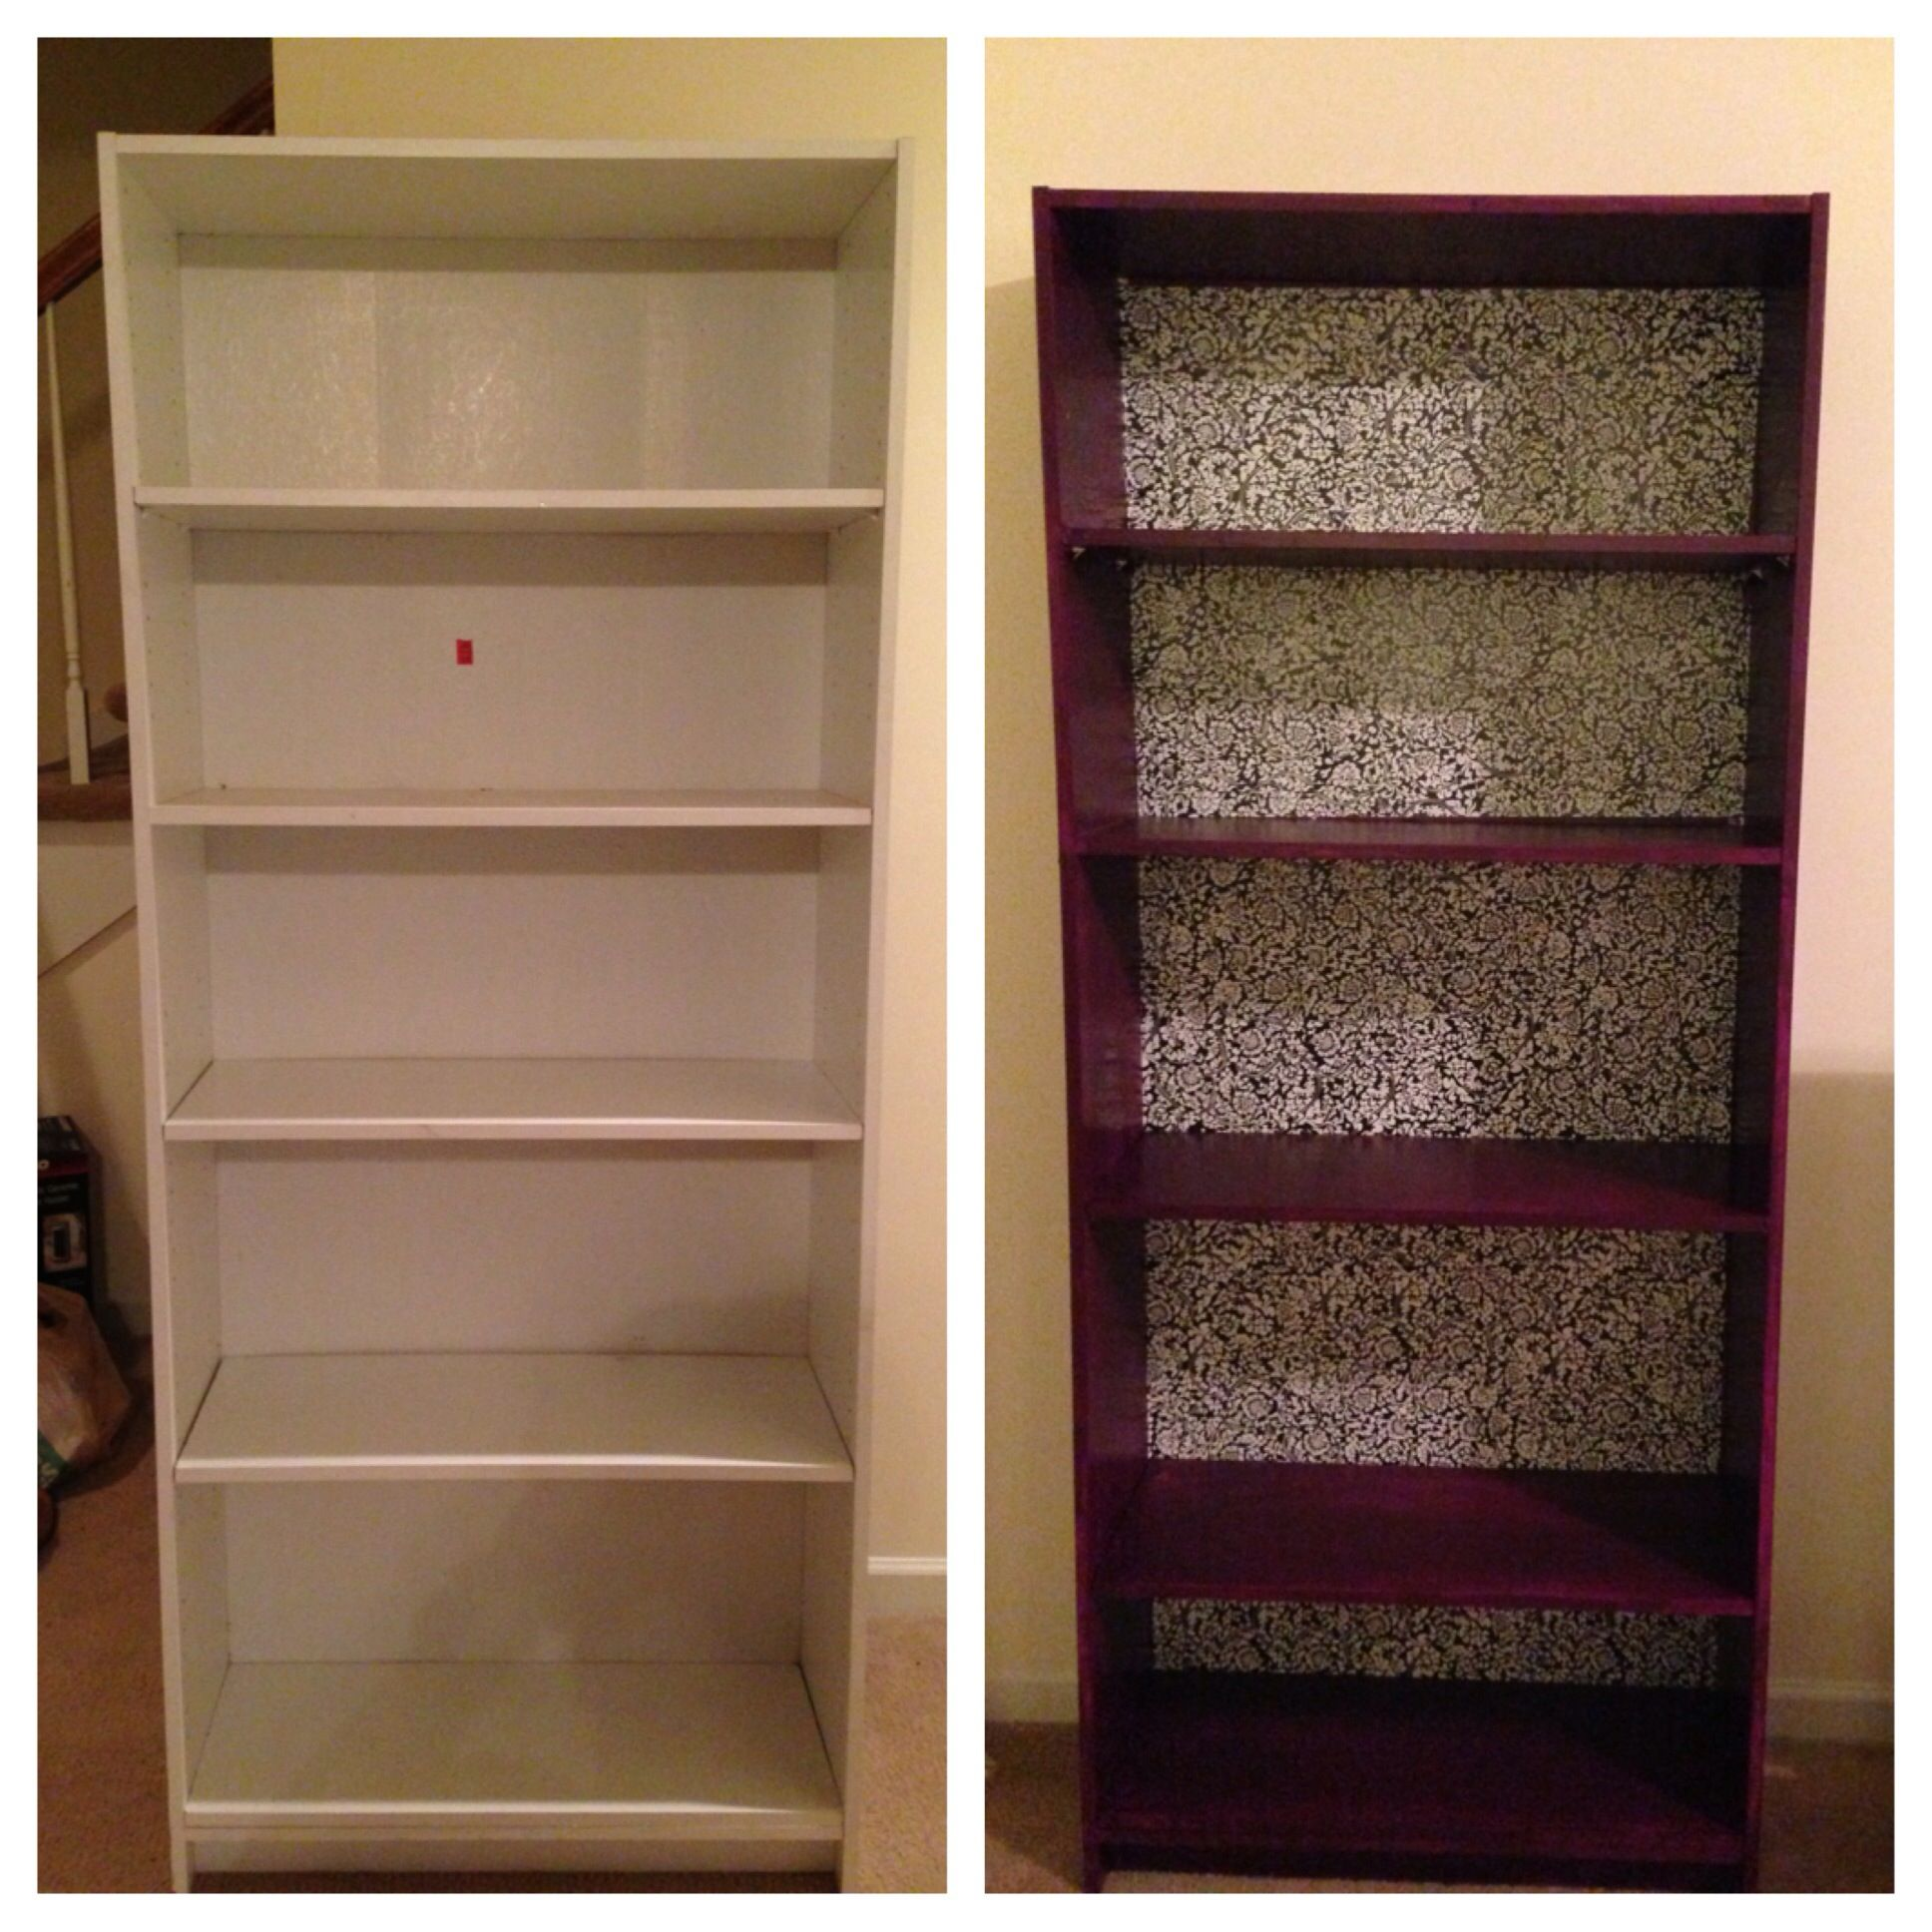 Bought A Cheap Old Bookshelf From Goodwill Primer And Paint Home Depot Shelf Liner Target BOOM